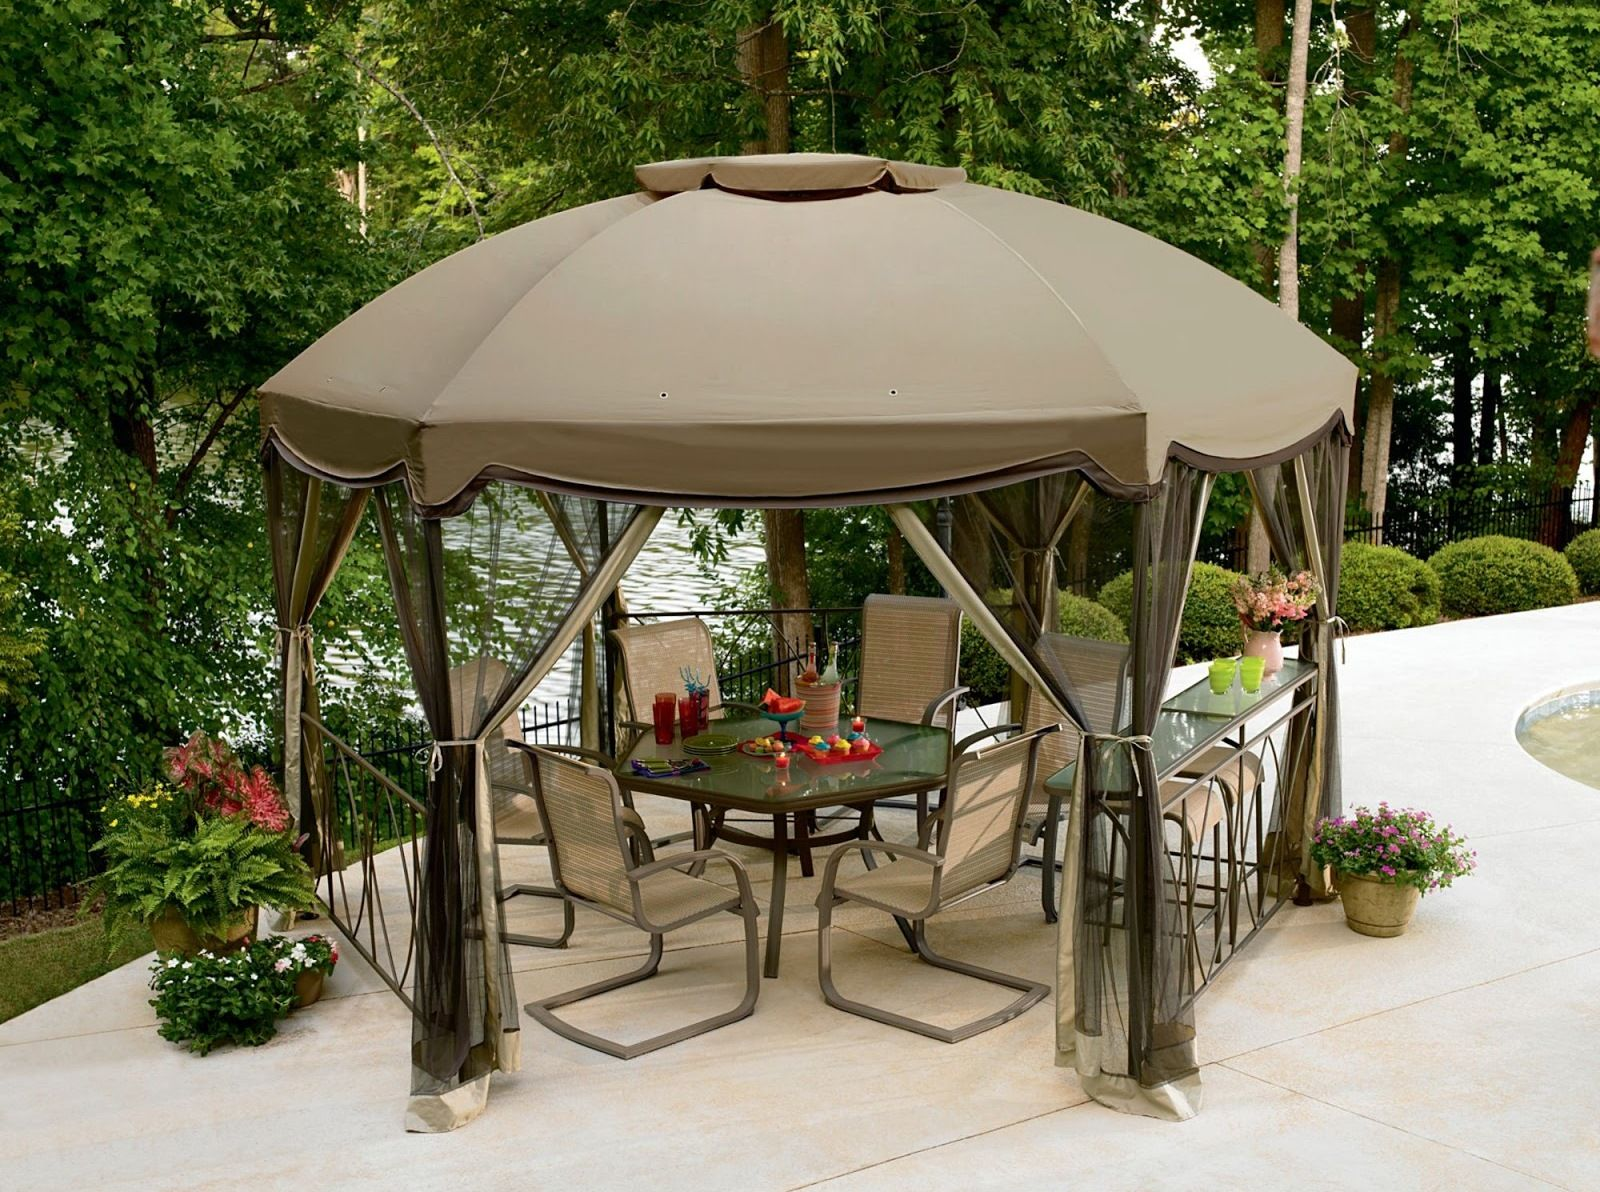 Gazebo Canopy With A Circular Roof